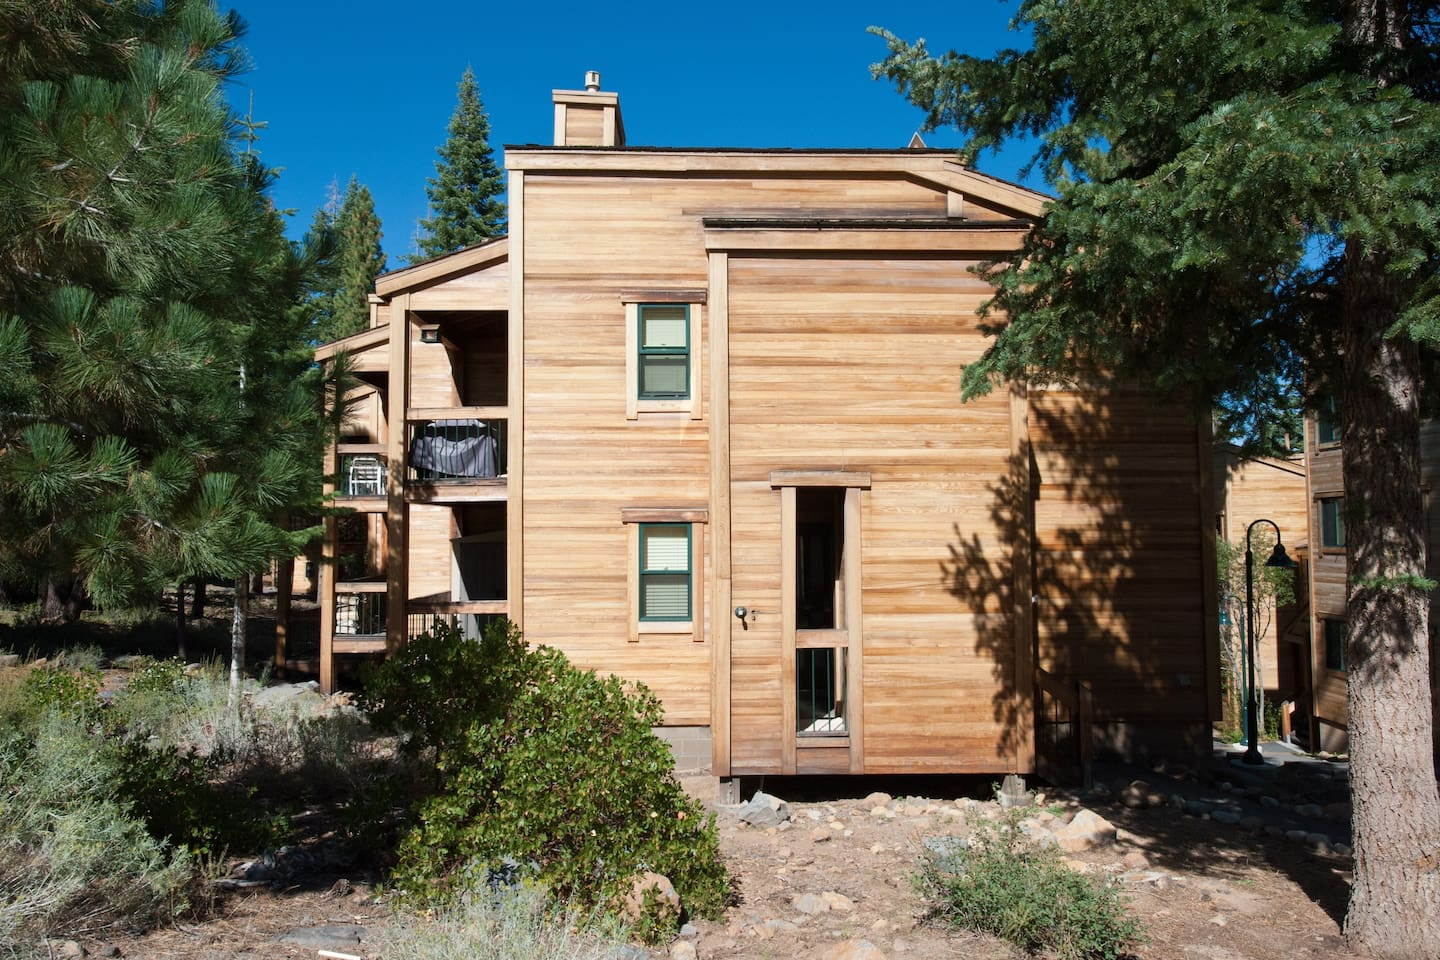 The condo has a nice modern, yet rustic feeling, nestled in the pine tree-filled hills just a short walk or free shuttle ride to the Northstar village.